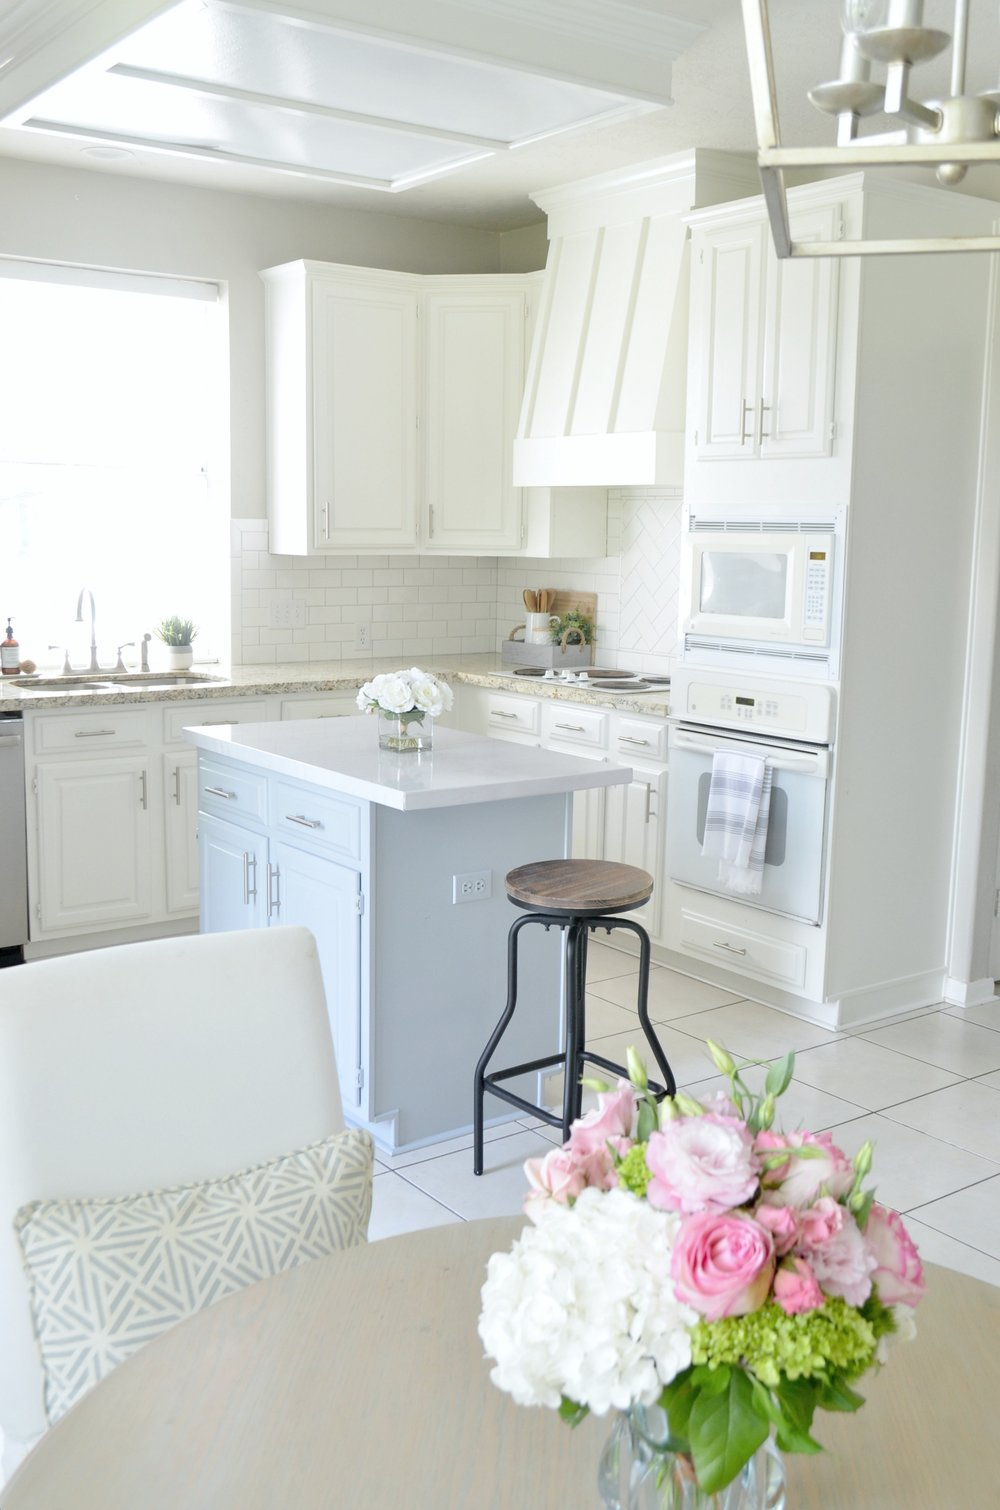 Kitchen Makeover by Julie Warnock interiors features white painted cabinets, subway tile backsplash and custom venthood.